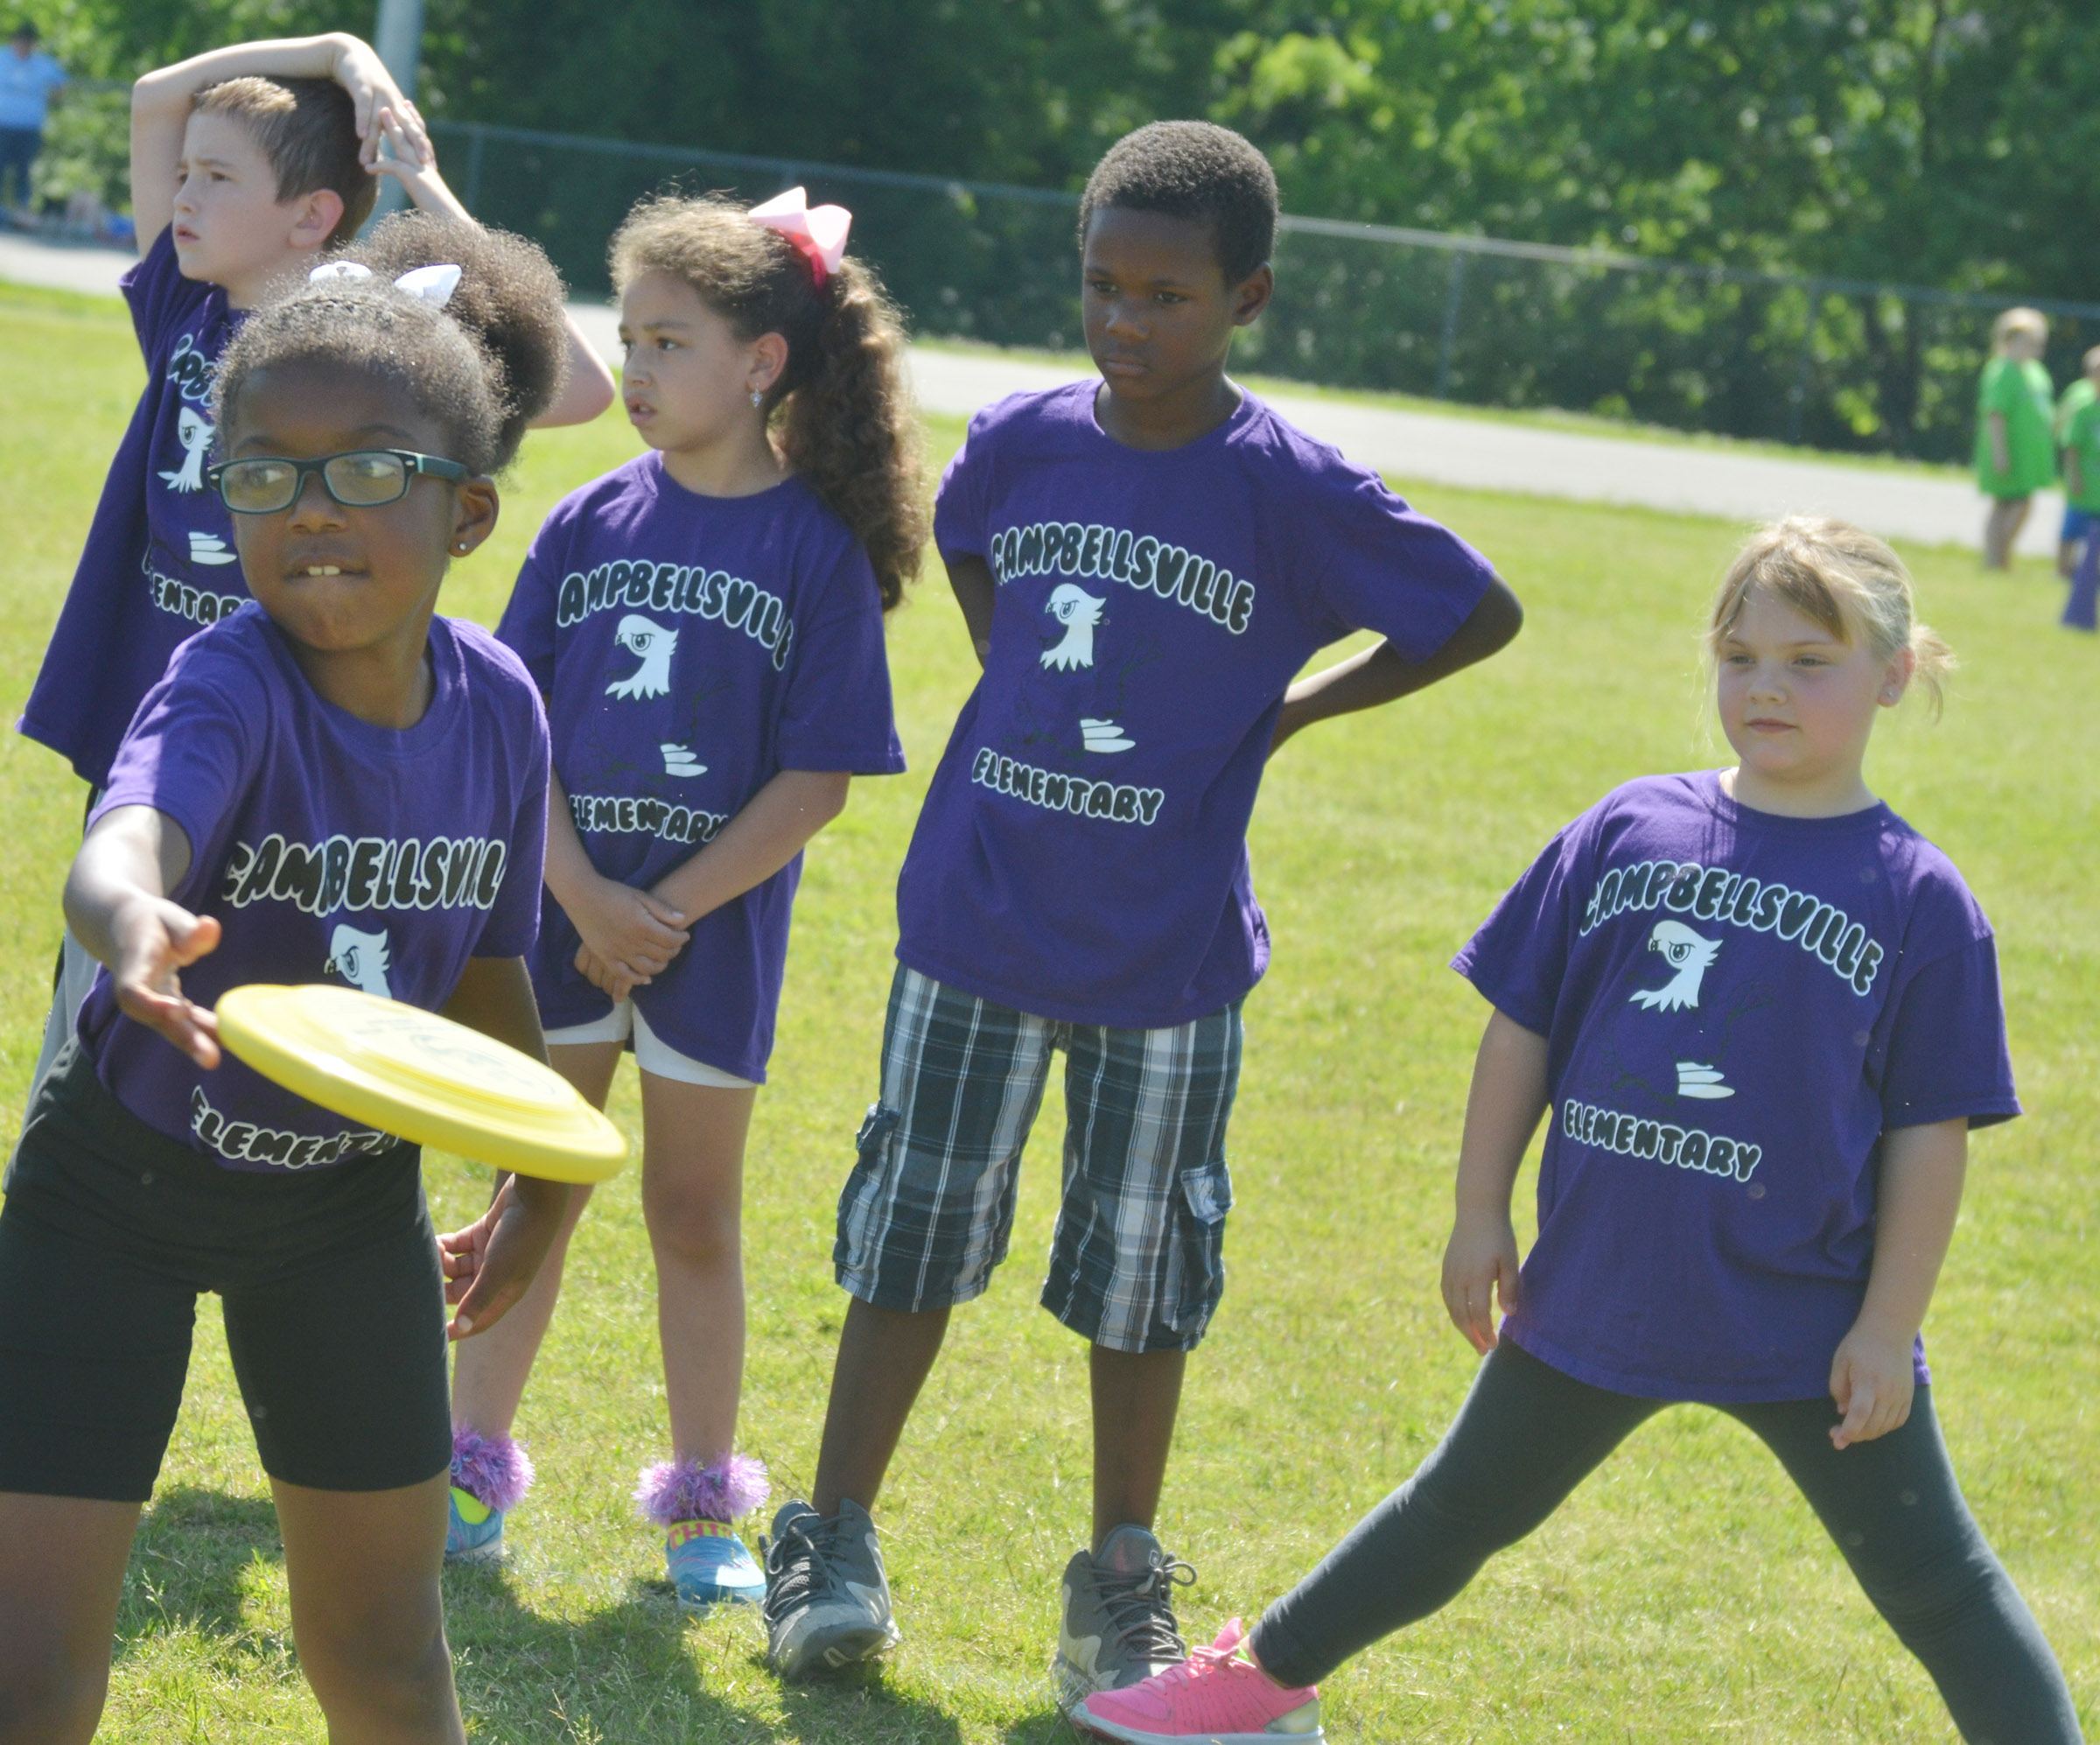 CES first-grader Willow Griffin throws a Frisbee.